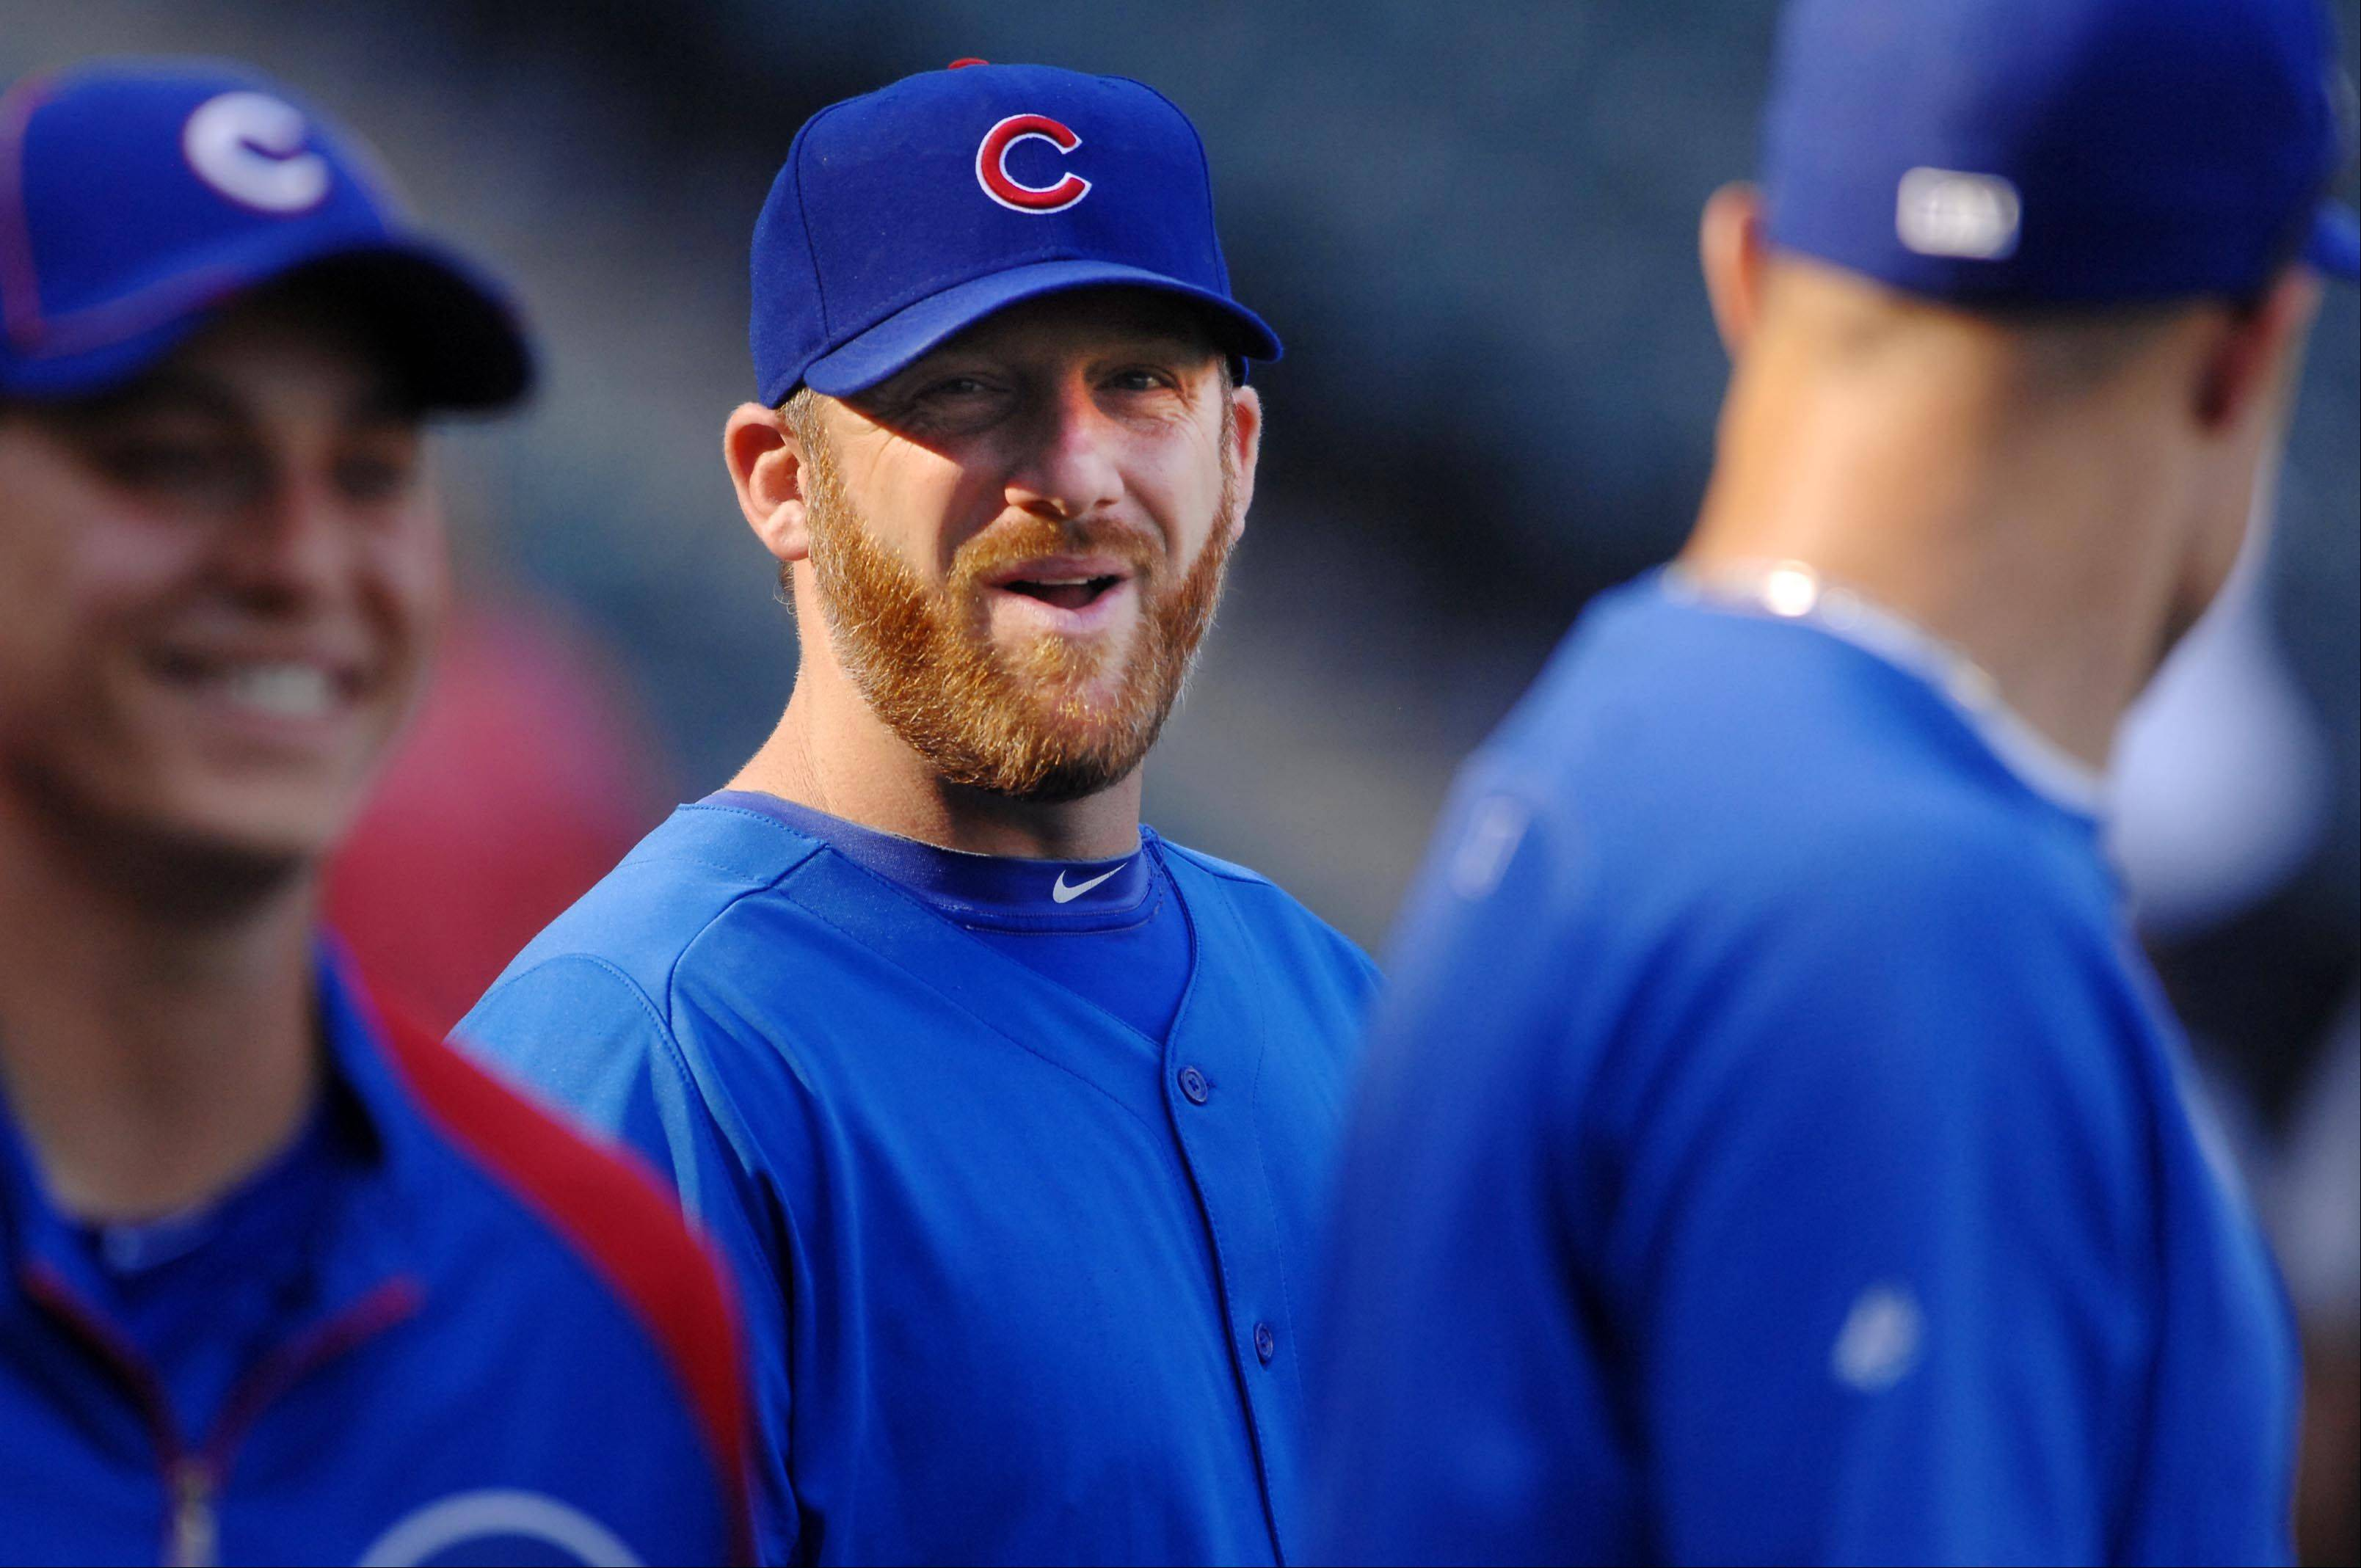 On or off the field, Cubs pitcher Ryan Dempster is a good guy to have around, and Mike North believes the Cubs should keep Dempster on the club and not trade him.